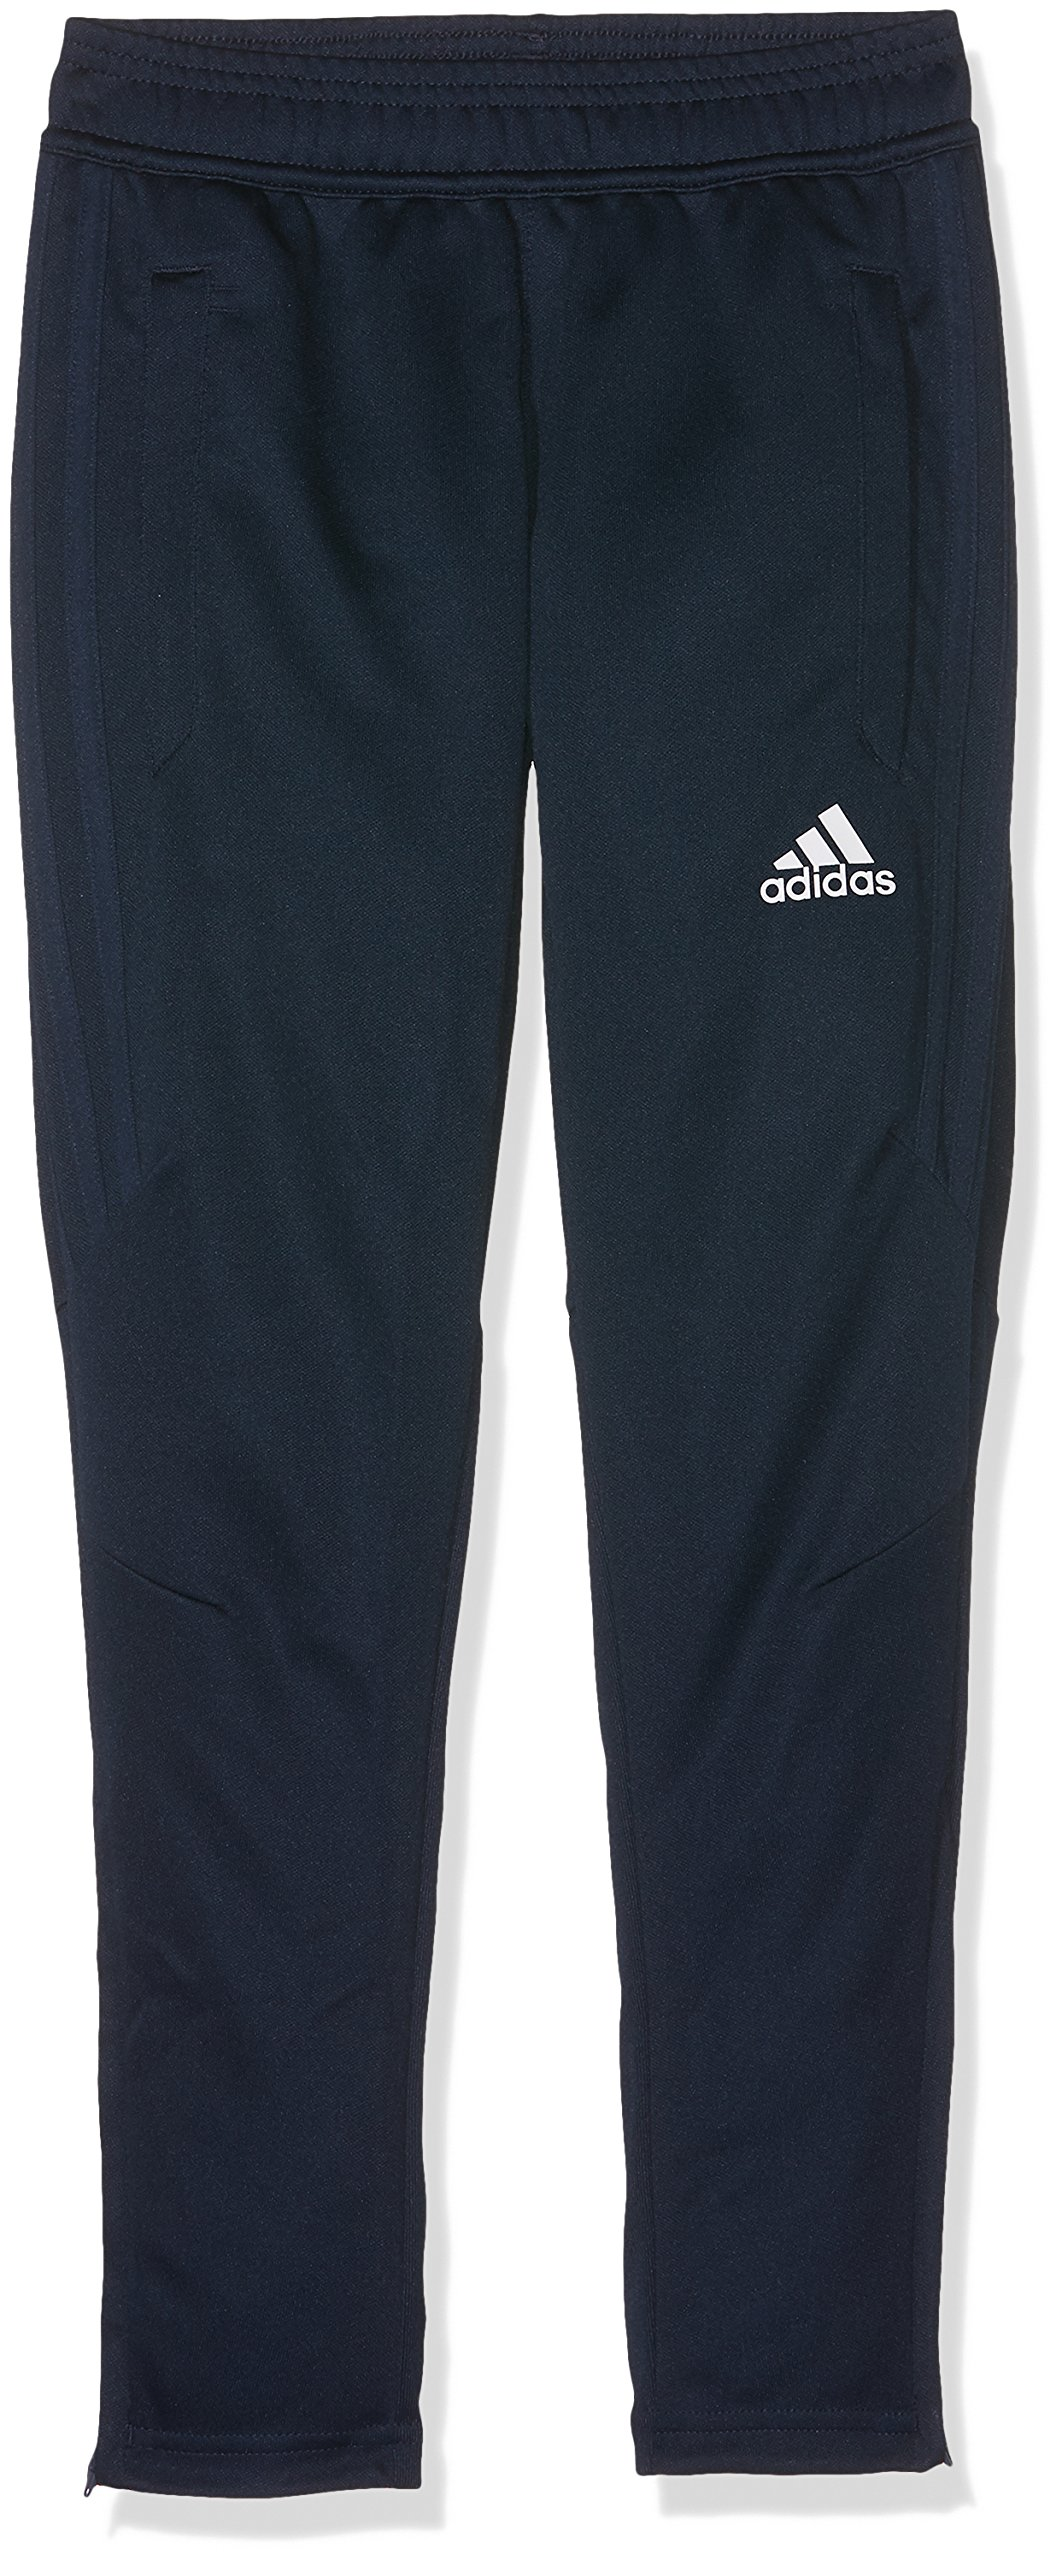 Adidas Tiro 17 Training Skinny Pants - Youth - Navy/Navy/White - Age 7-8 by adidas